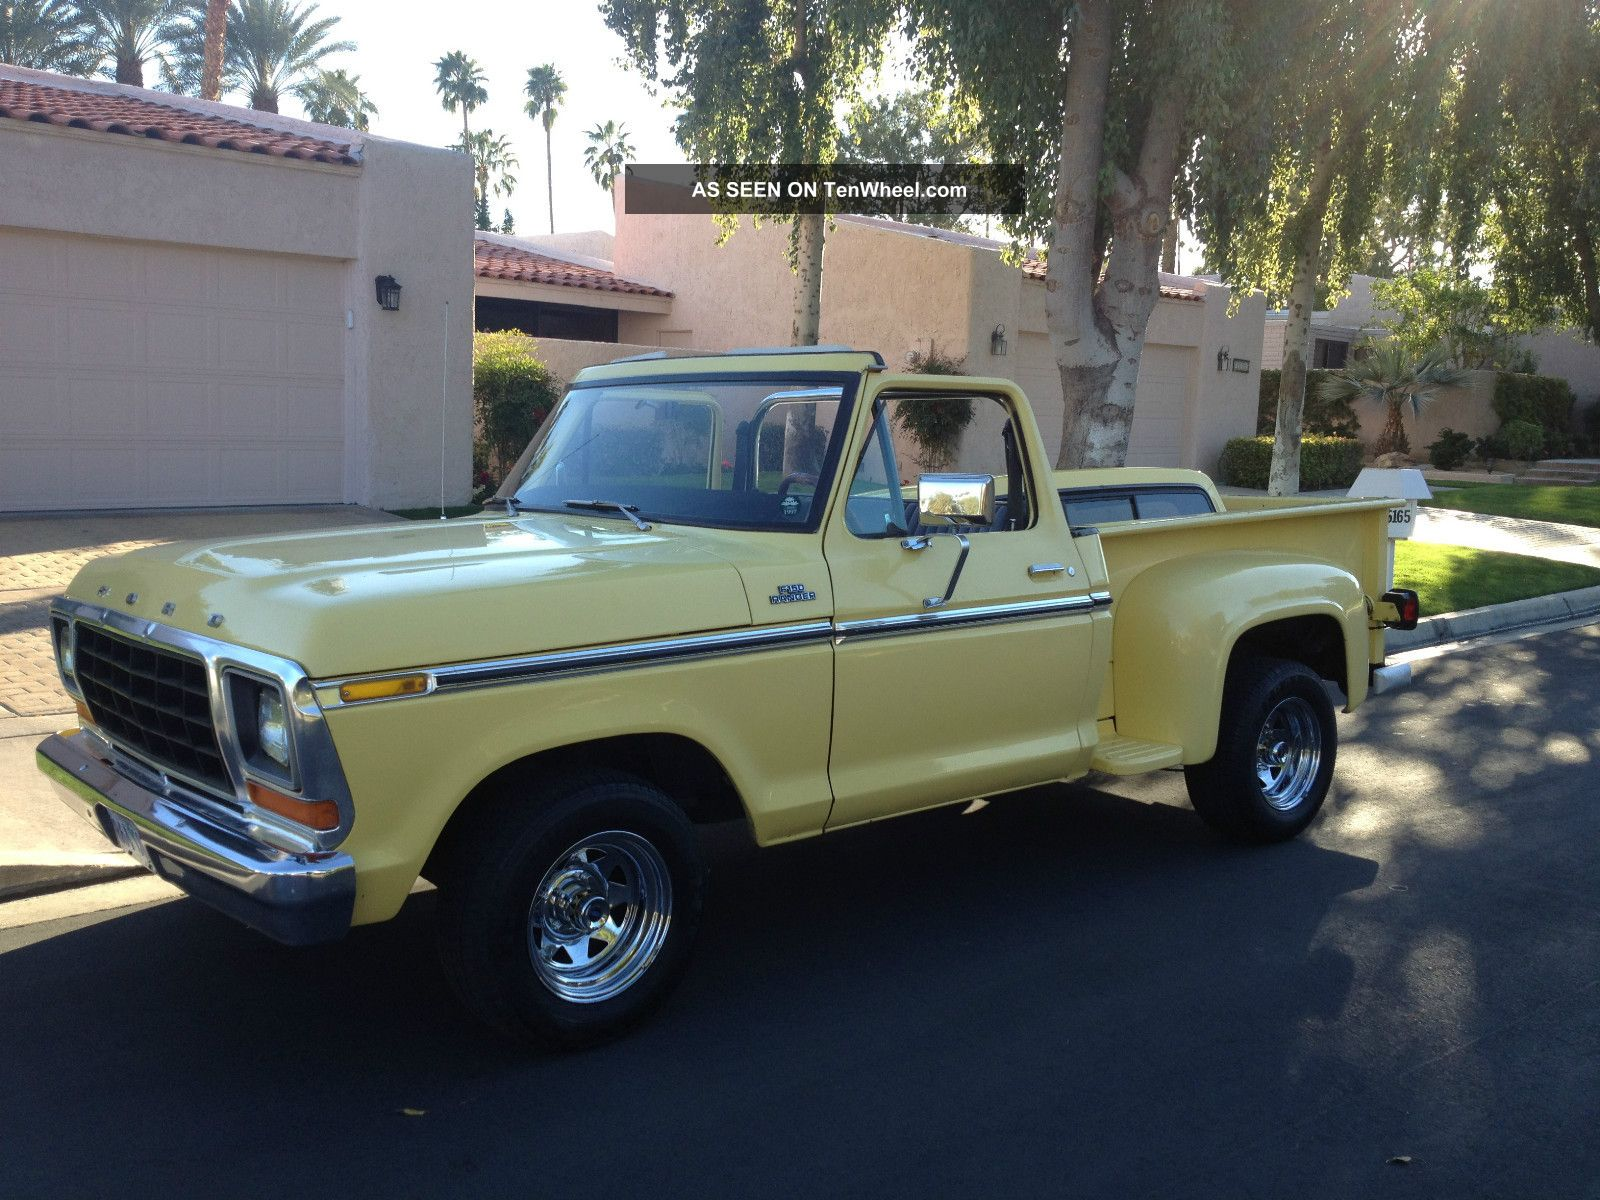 1977 ford f 150 ranger convertible 6 39 step bed w roll bar custom wheels. Black Bedroom Furniture Sets. Home Design Ideas